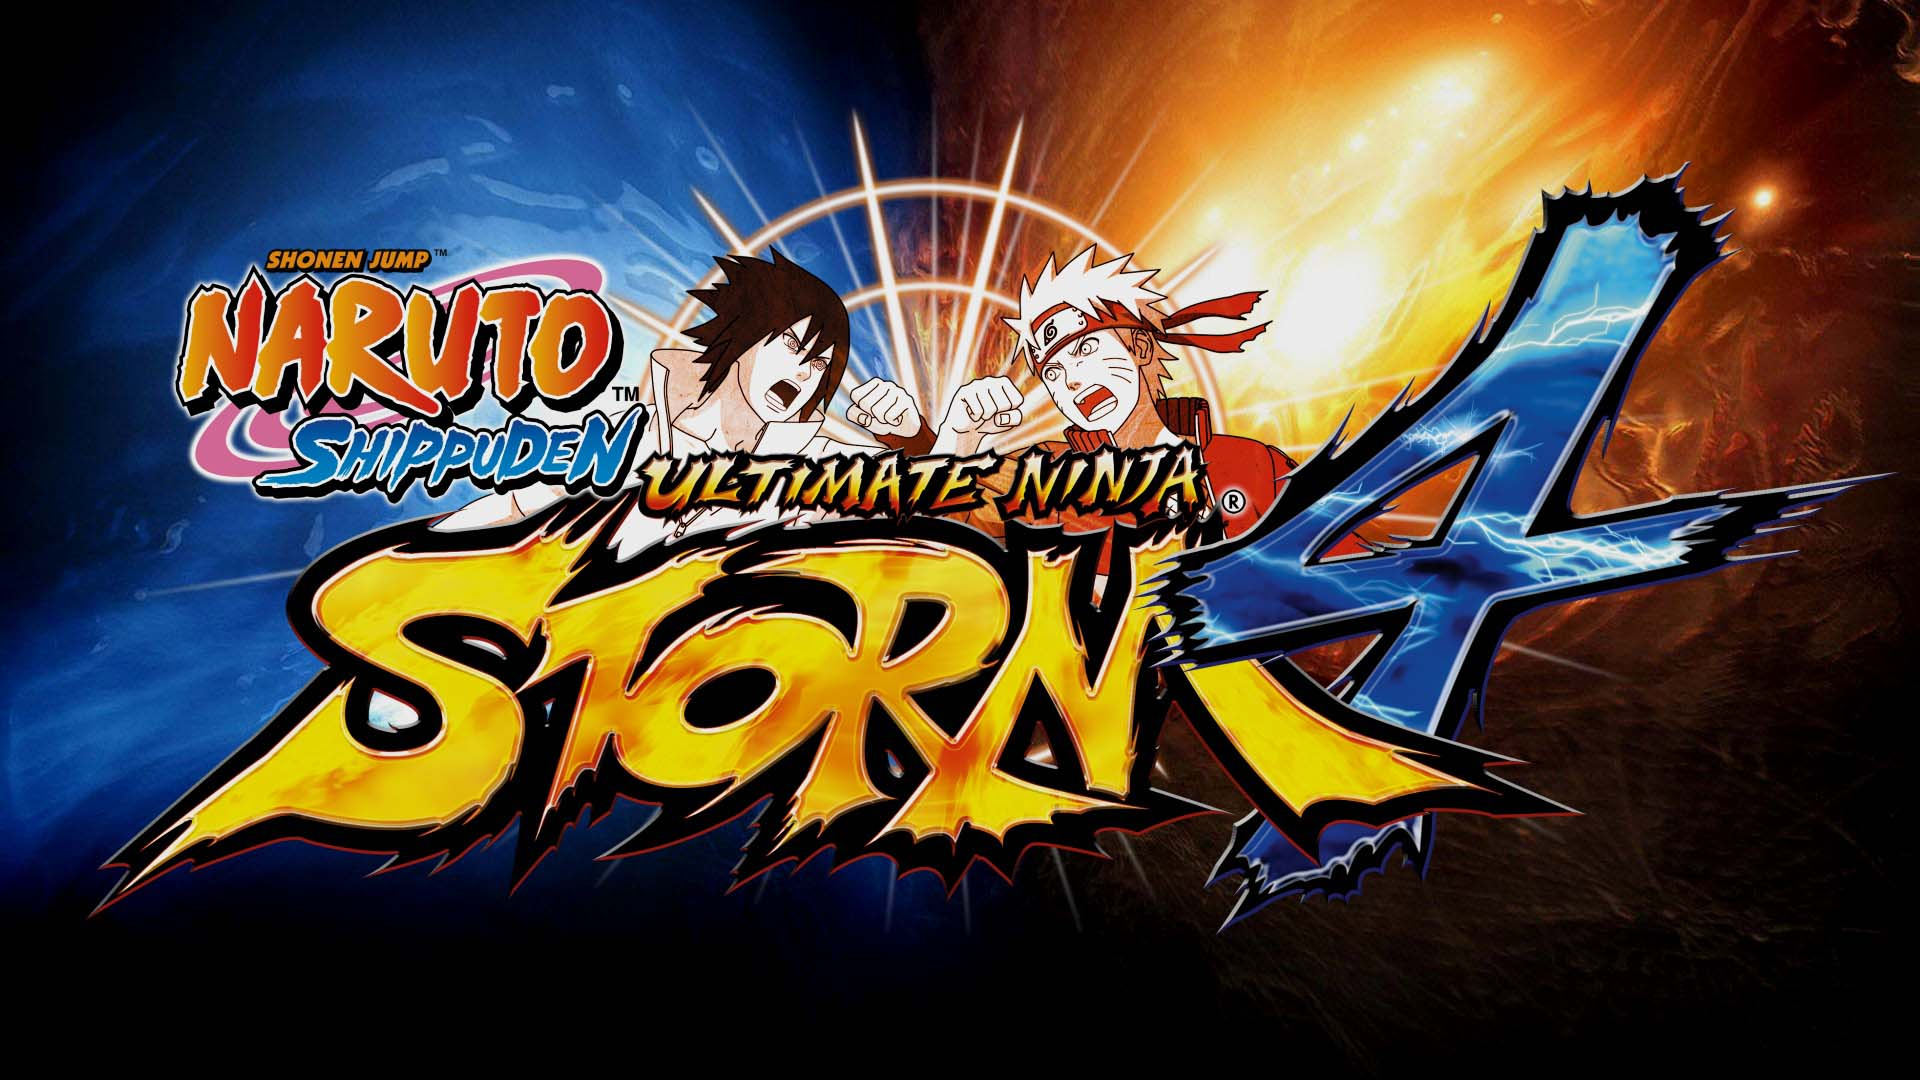 Naruto Shippuden Ultimate Ninja Storm 4 Full PC Game Download Free